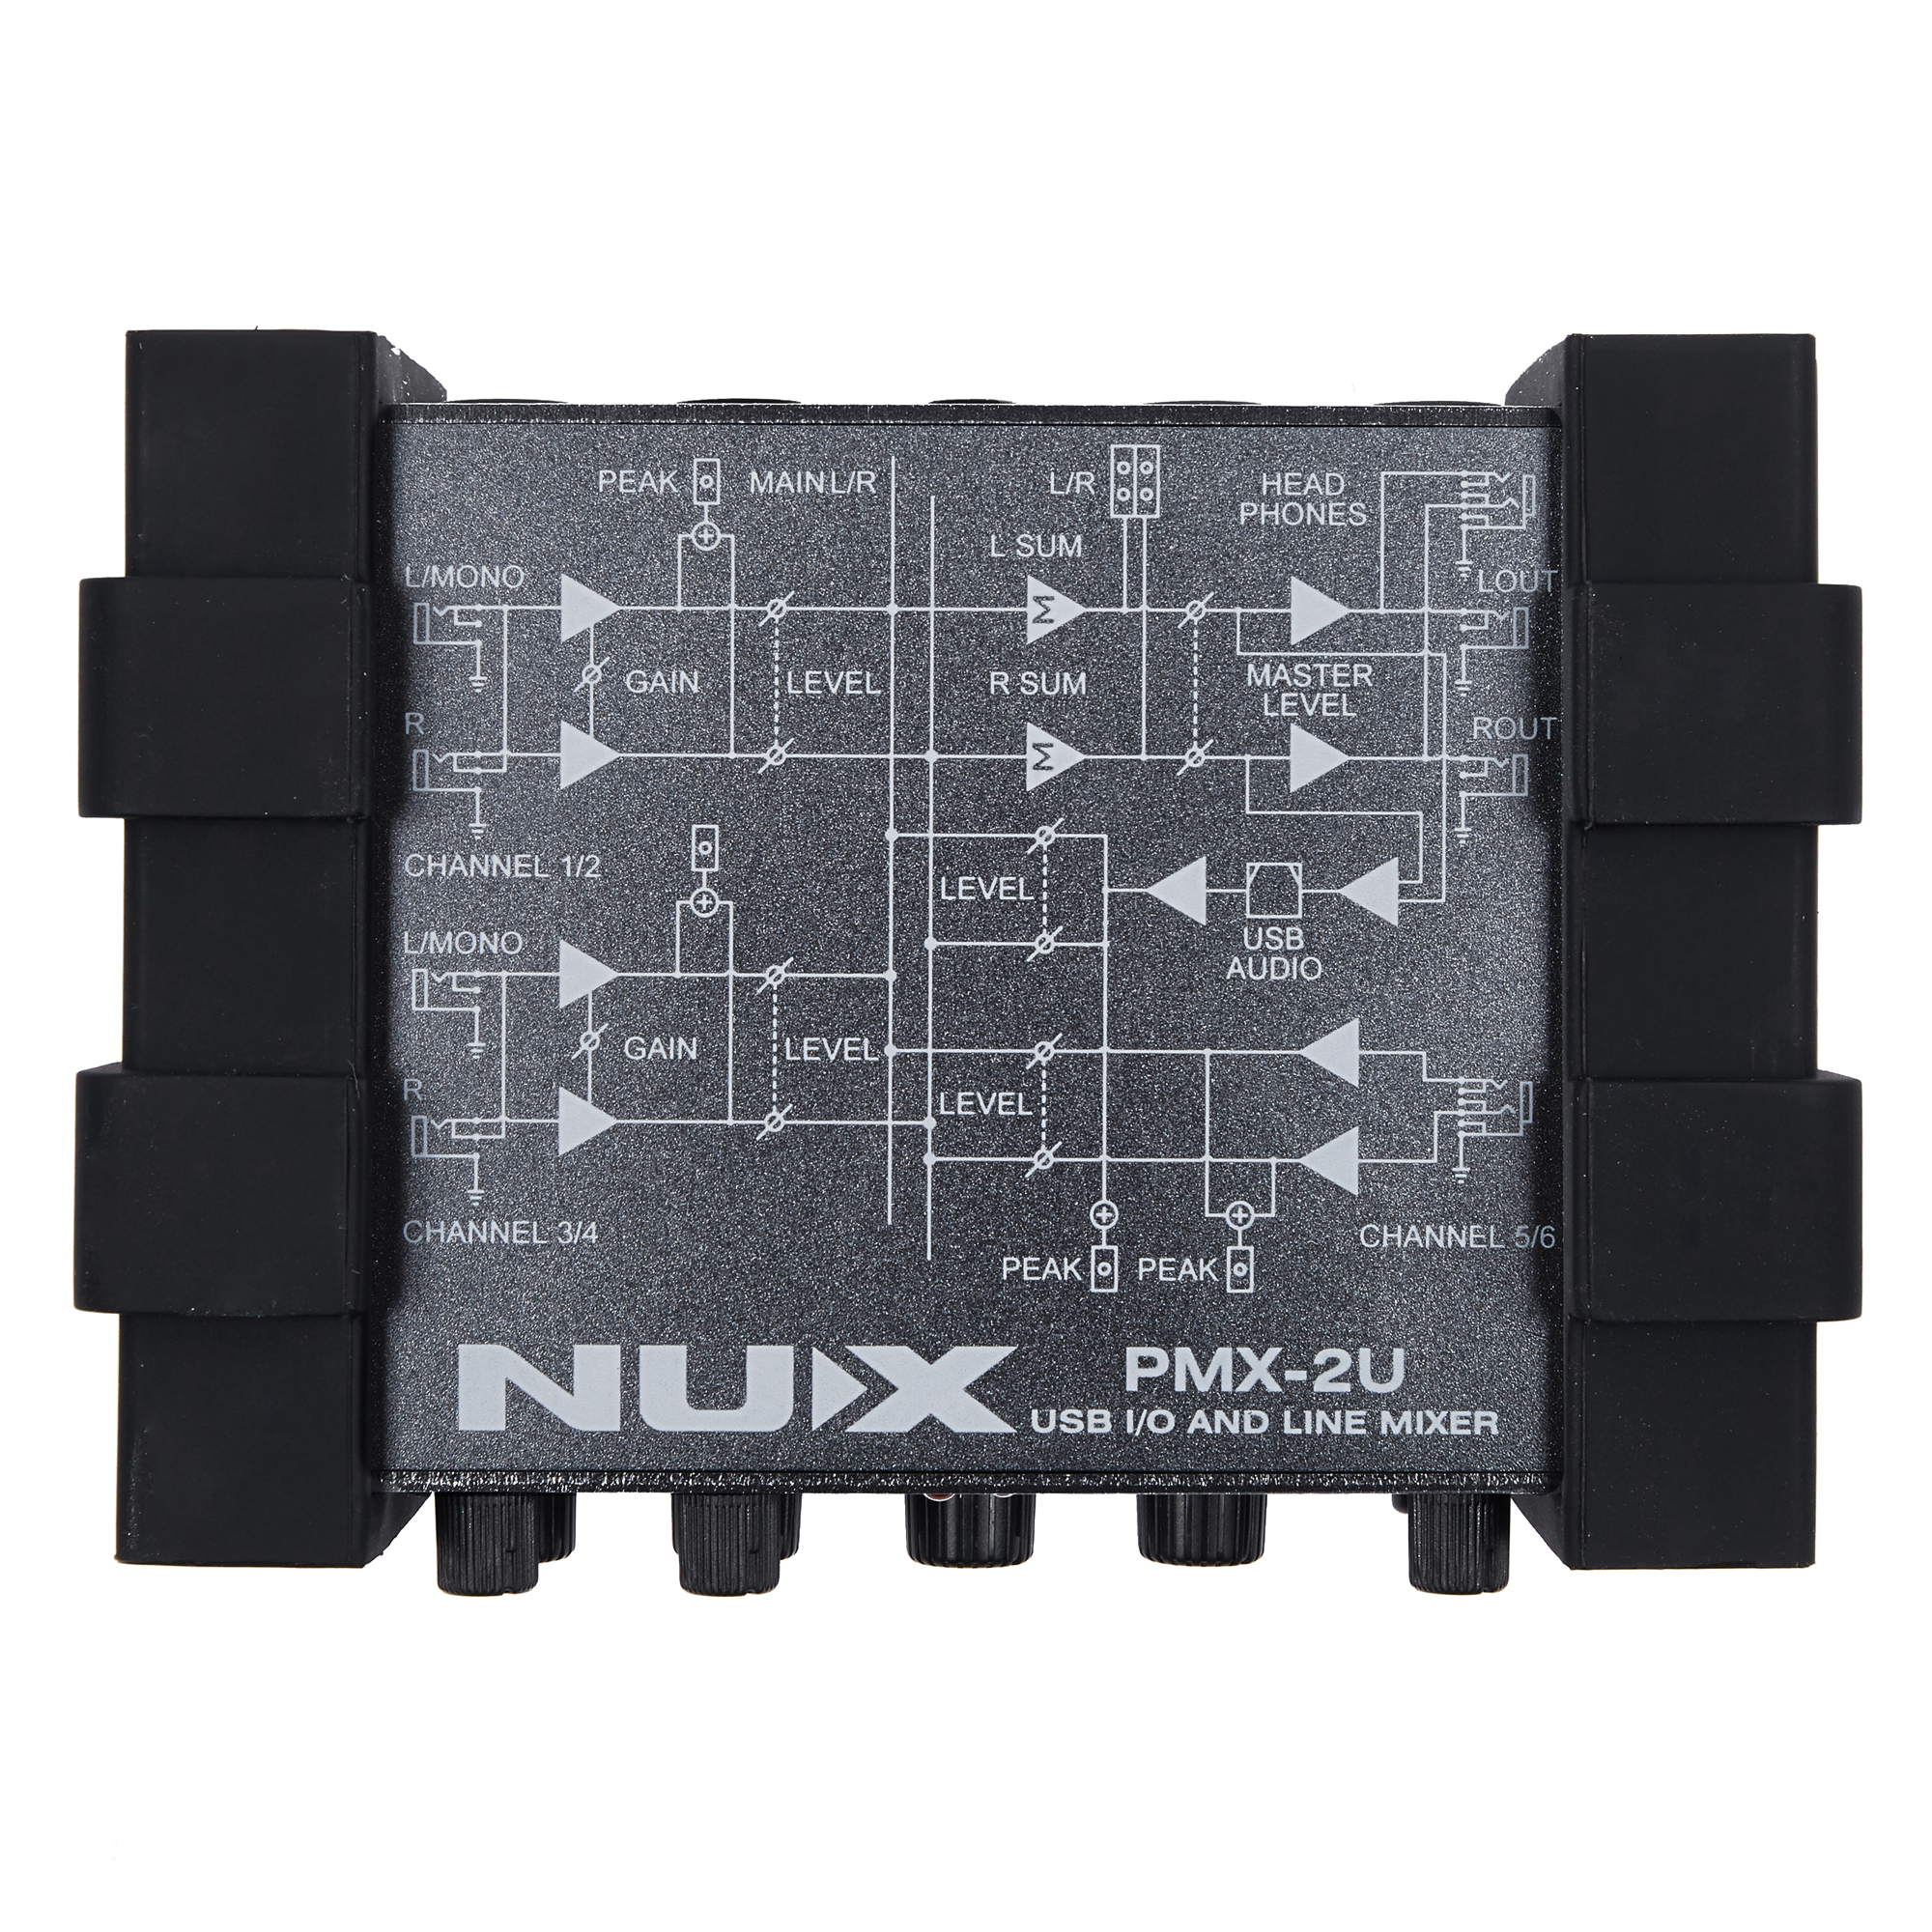 NUX PMX-2U USB I/O Line Mixer Music Instrument Device 6 Inputs 2 Outputs USB Audio Interface Guitar Bass Accessories nux pmx 2 new multi channel line mixer overload indicator 8 in 2 out mixer fit several audio devices for electric guitar bass